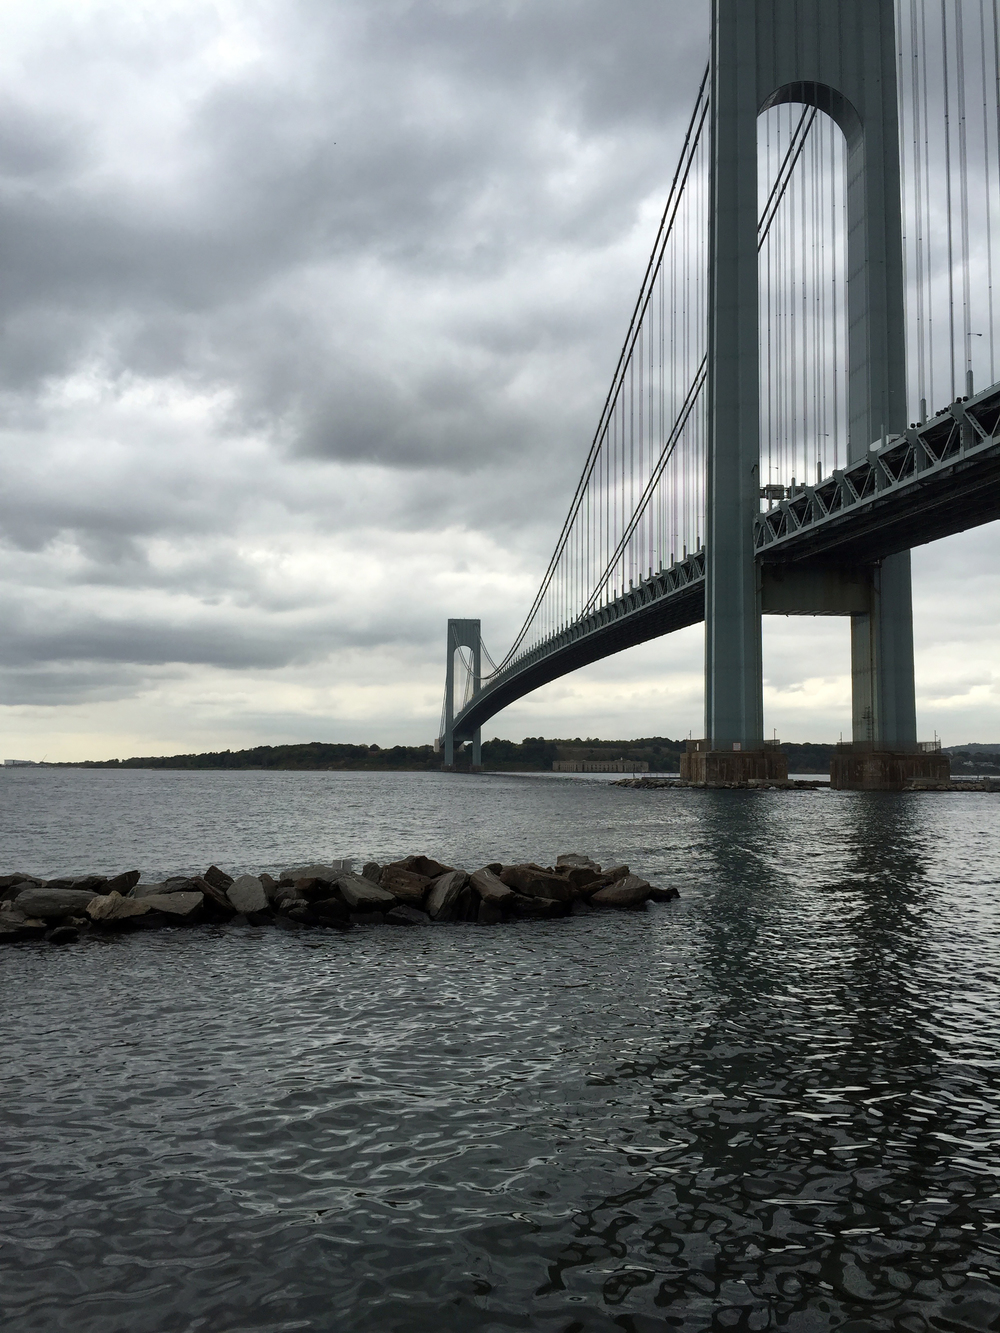 The Verrazano Bridge from Denyse Warf during high tide on a cloudy September Tuesday - September 22, 2015